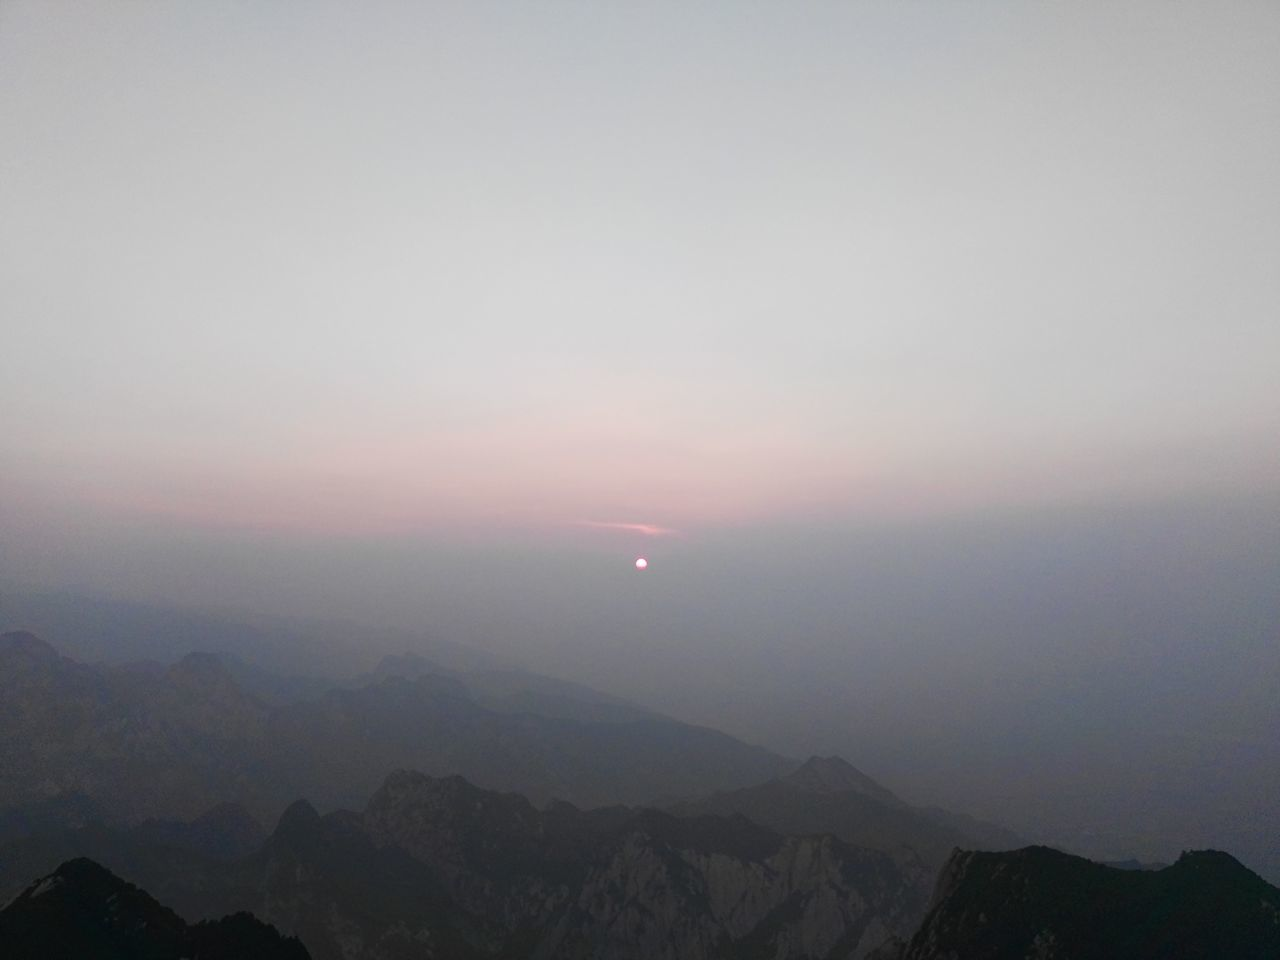 sunset, beauty in nature, nature, tranquil scene, scenics, tranquility, mountain, sun, sky, moon, outdoors, idyllic, no people, mountain range, landscape, crescent, astronomy, day